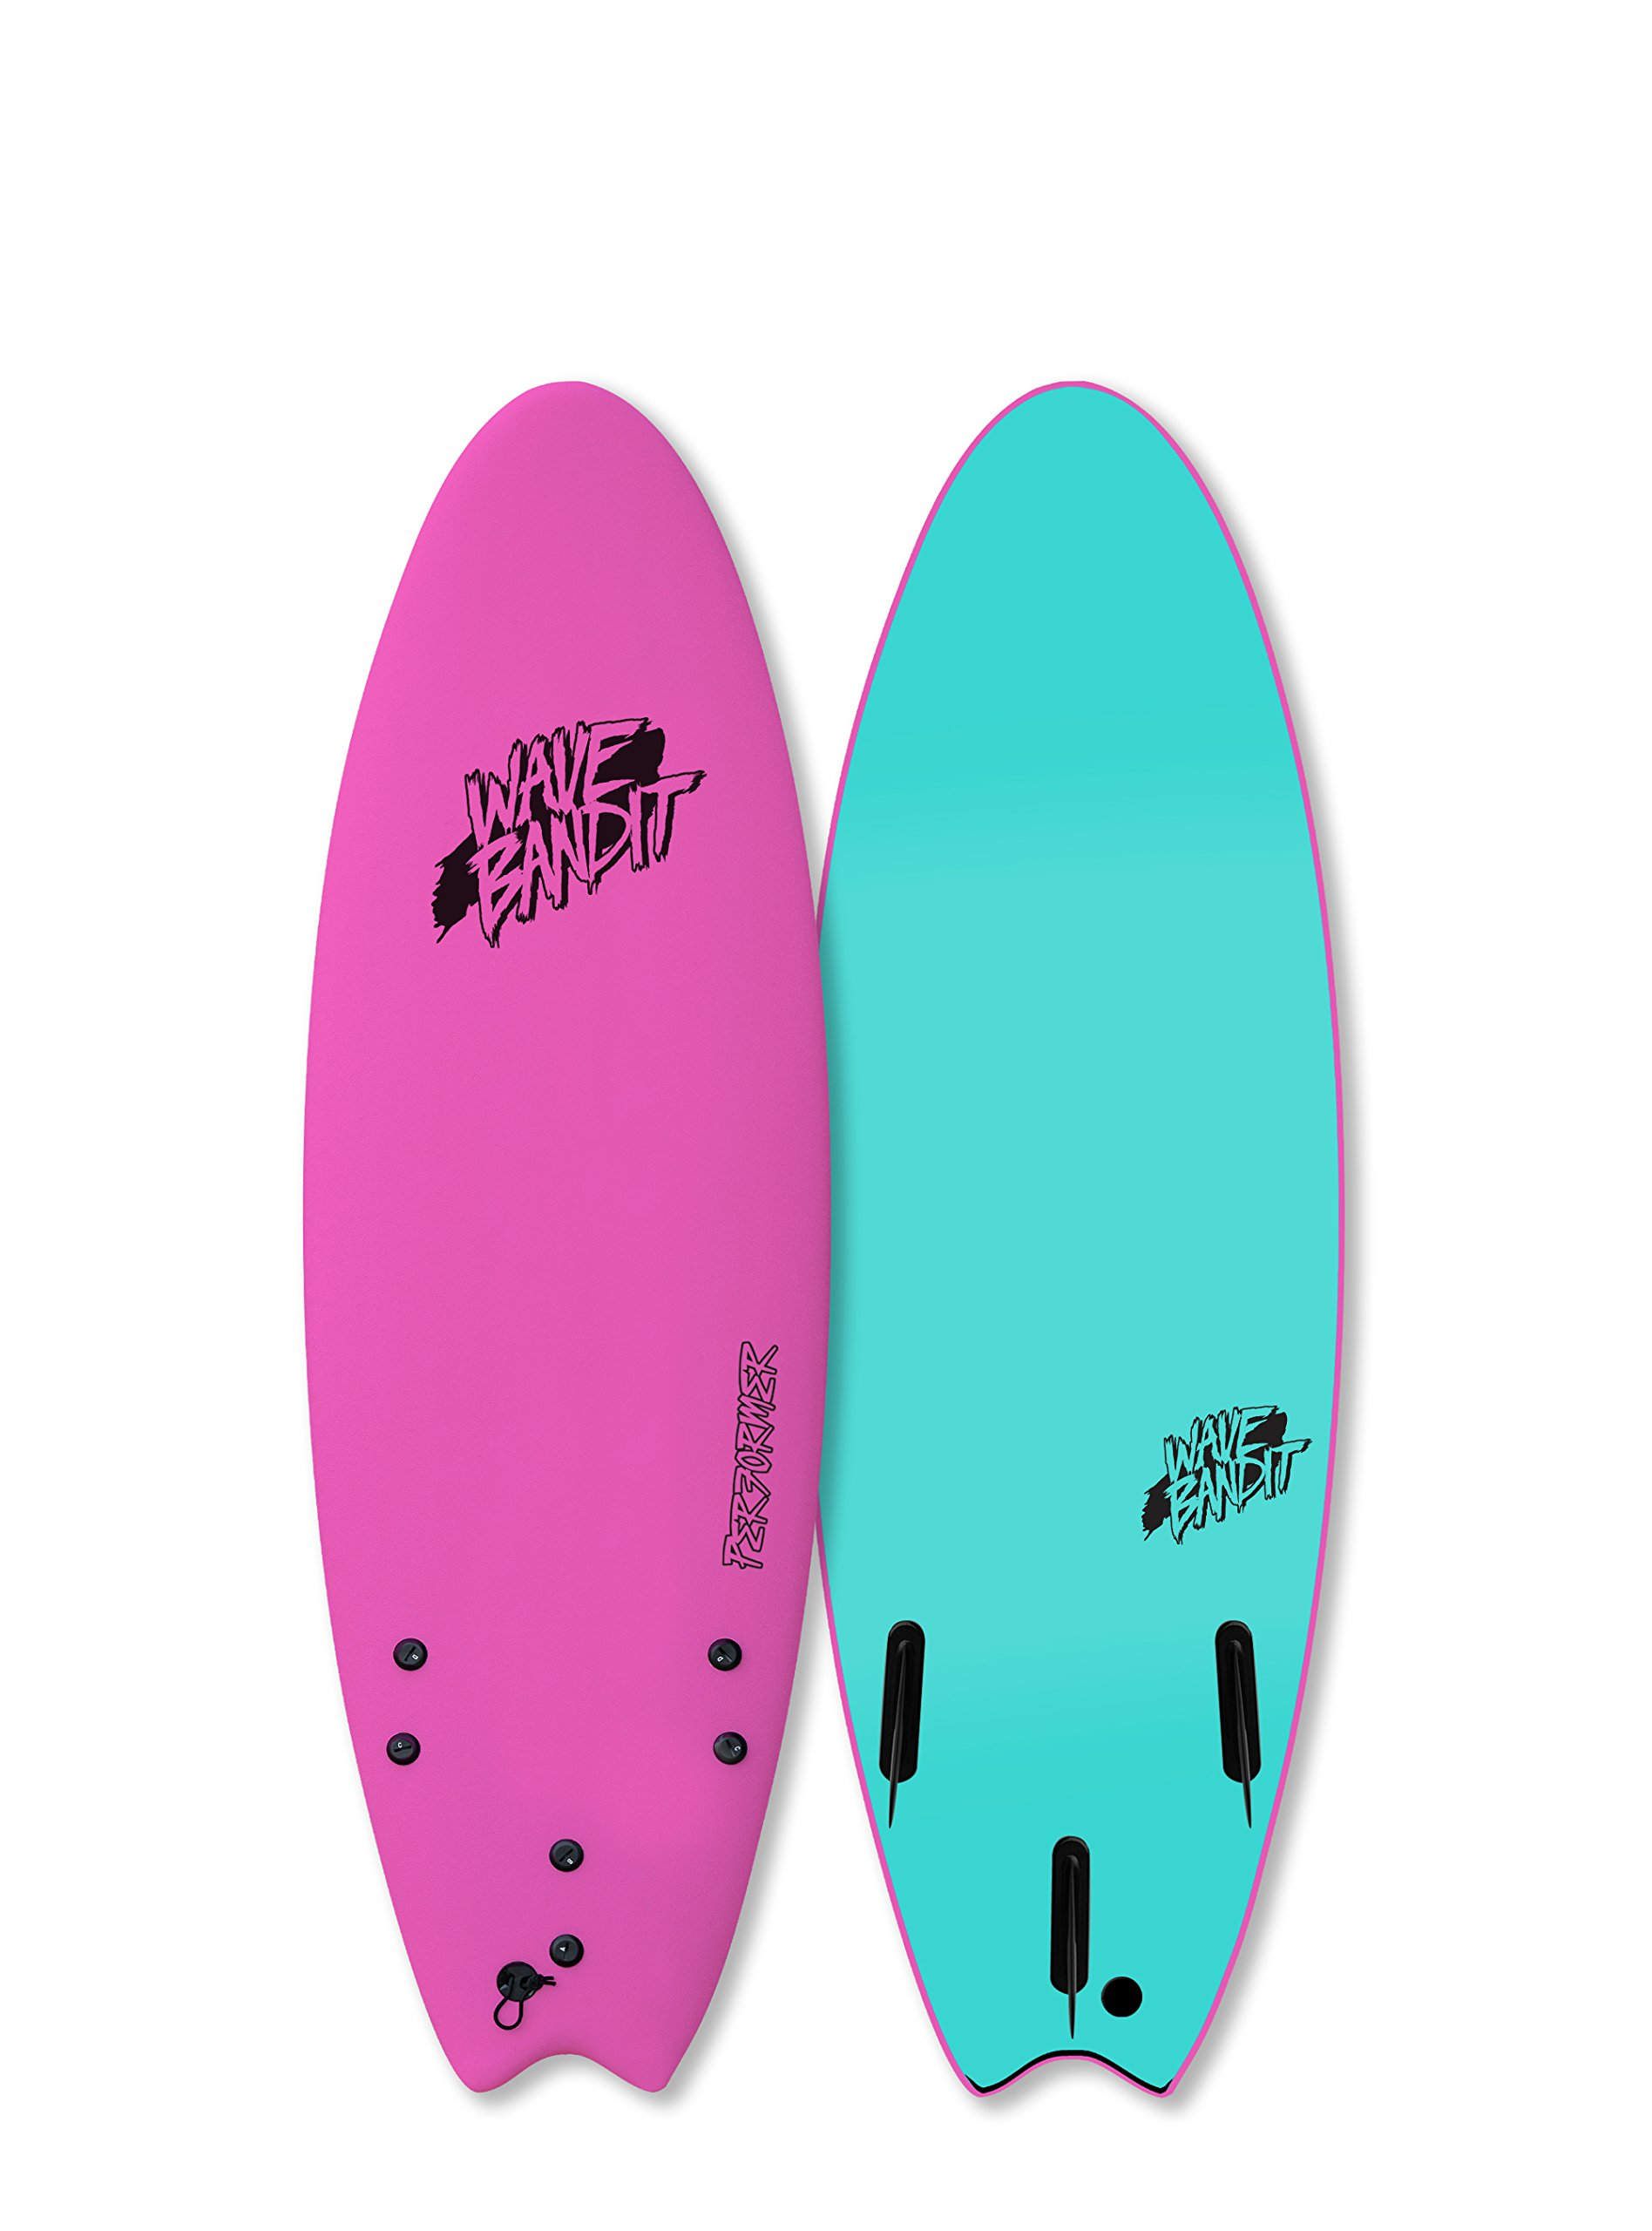 Catch Surf Wave Bandit Performer Tri Surfboard, Neon Pink, 5'6''